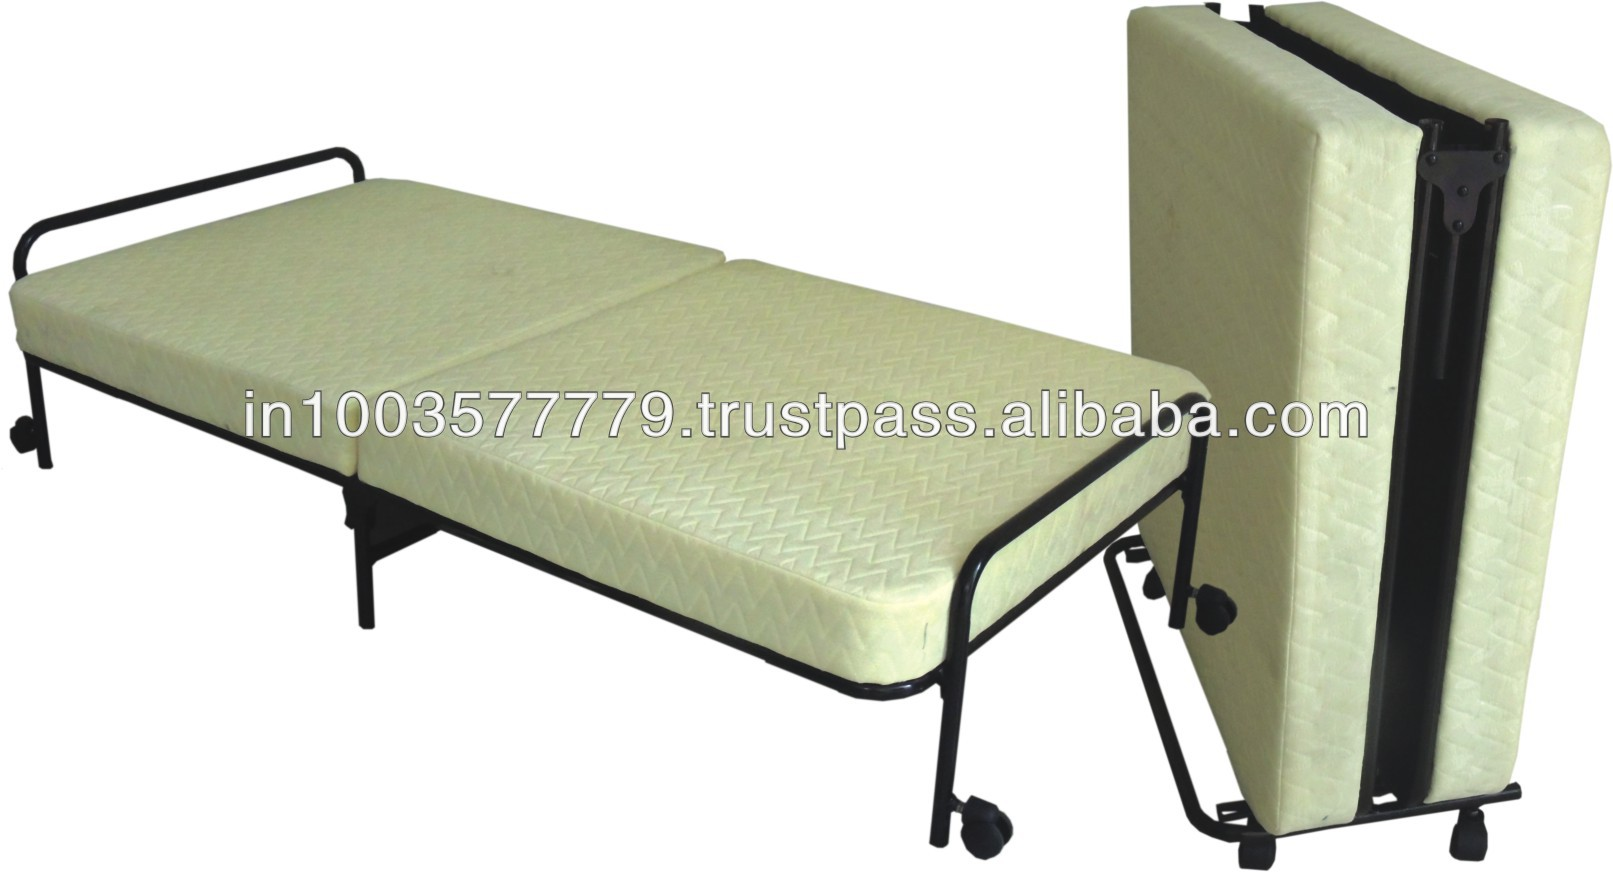 Rollaway Bed Mattress 48u2033 Roll Away 1 Full Size